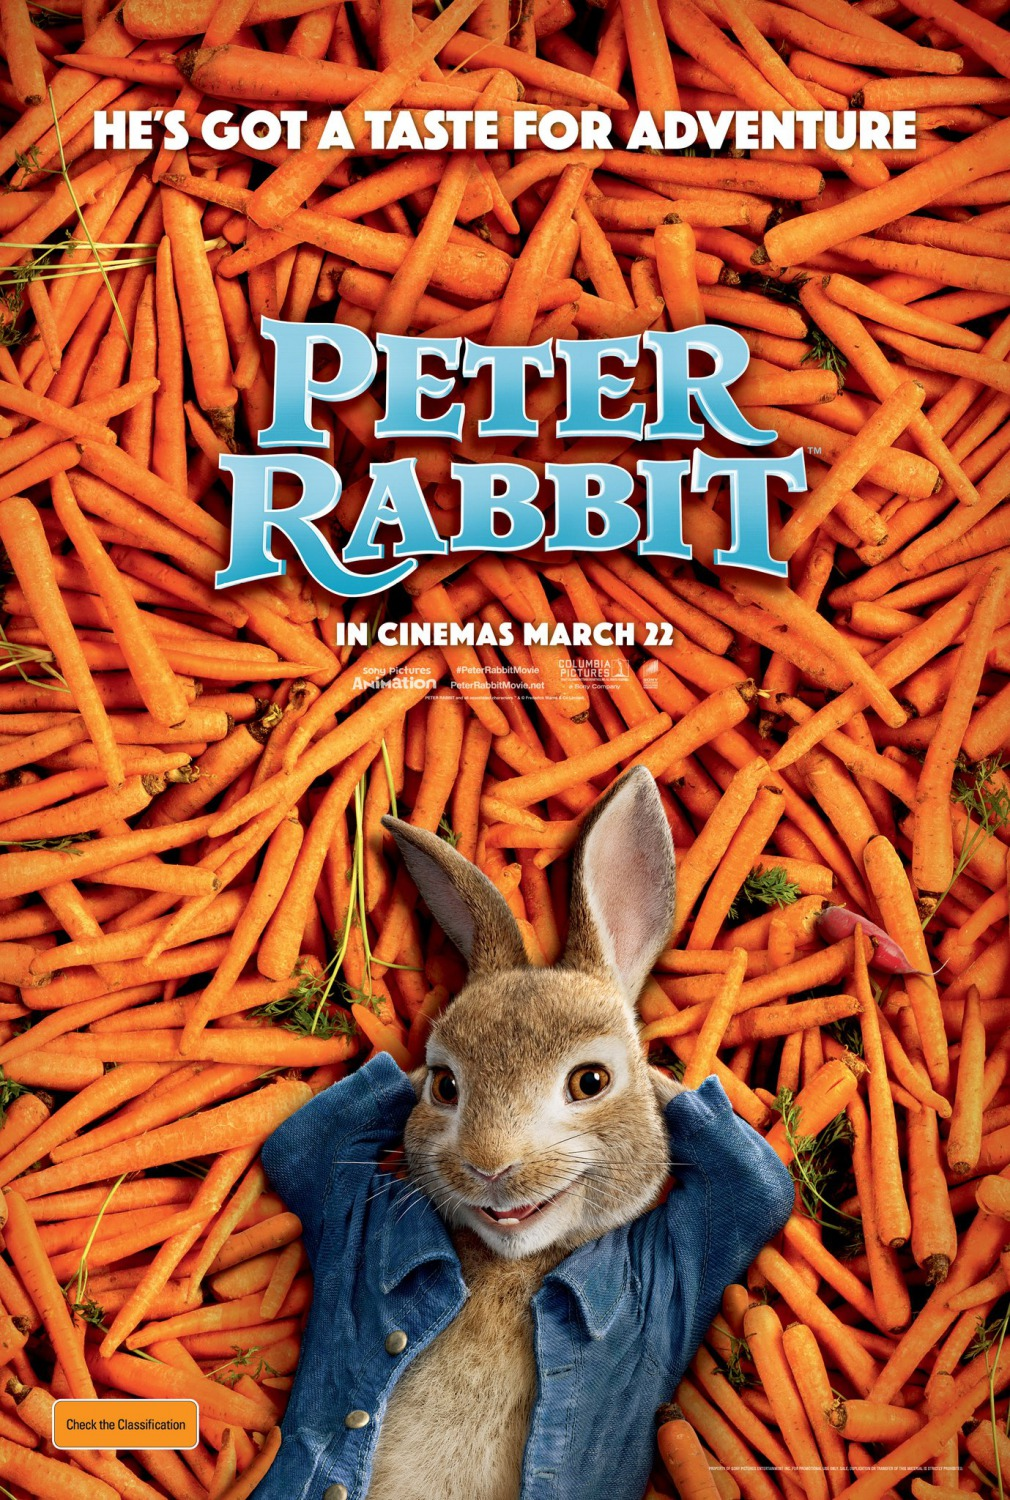 peter-rabbit-movie-poster.jpg